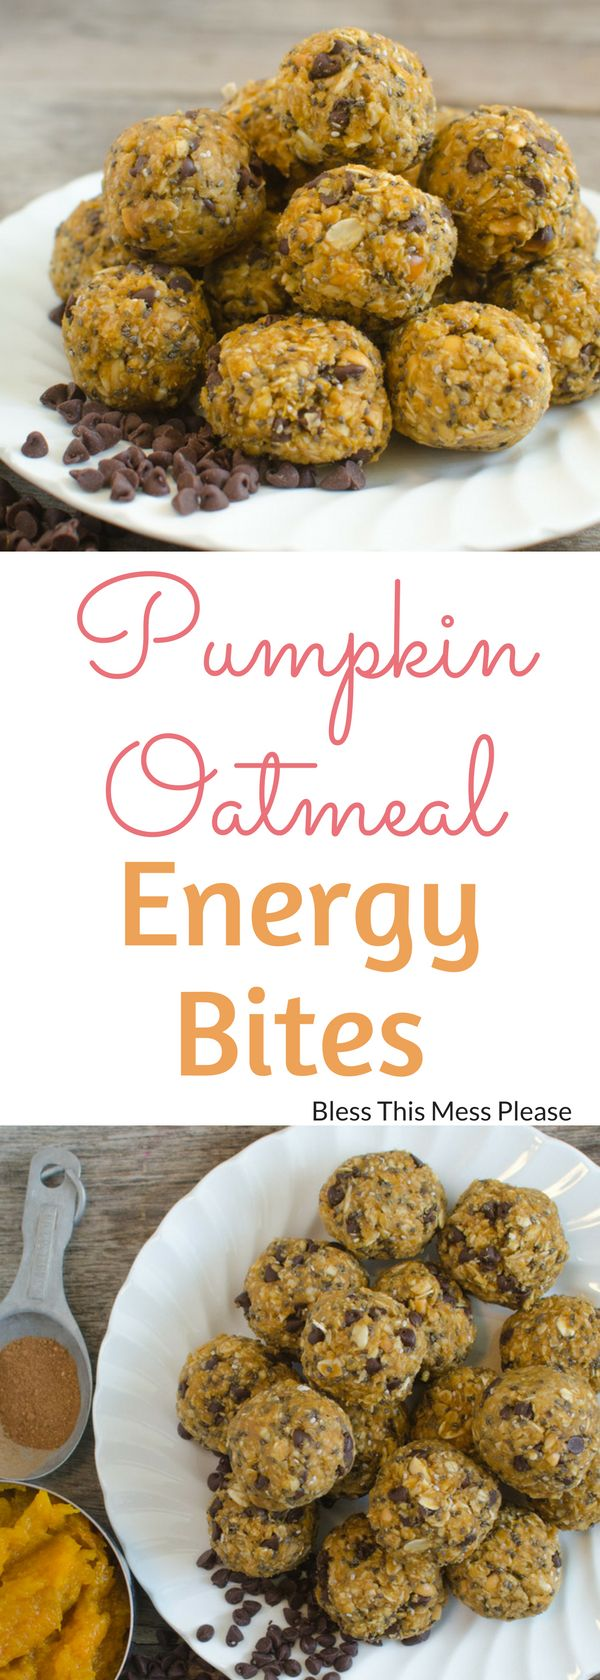 Healthy Pumpkin Oatmeal Energy Bites ~ Quick healthy pumpkin oatmeal energy bites that taste like cookies but are good for you!